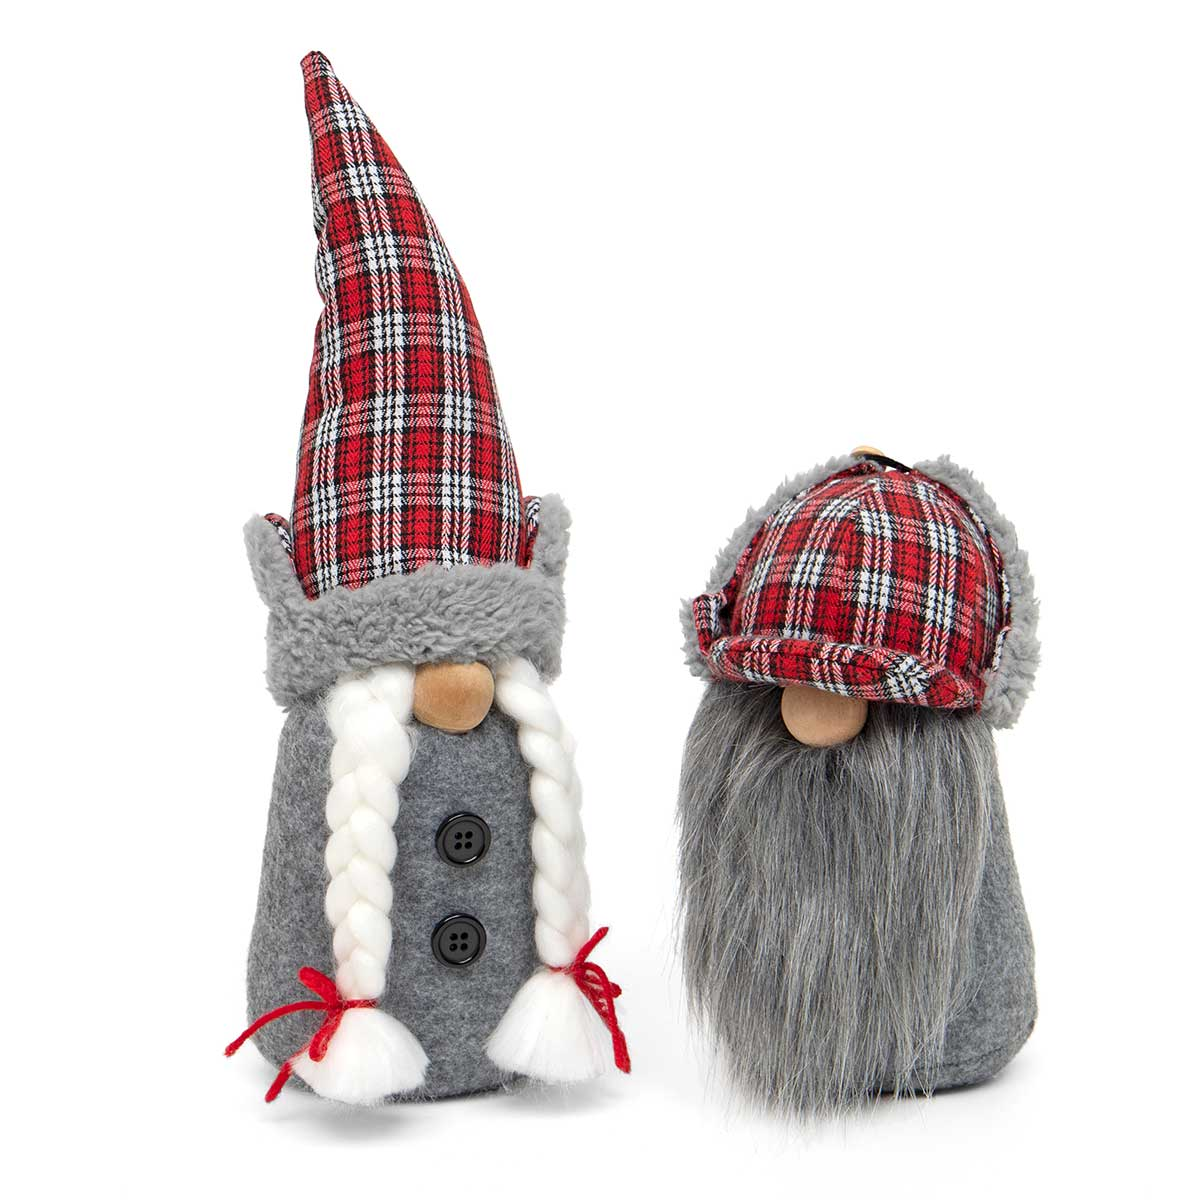 OUTDOOR PLAID GNOME COUPLE RED/GREY WITH SHERPA TRIM HAT